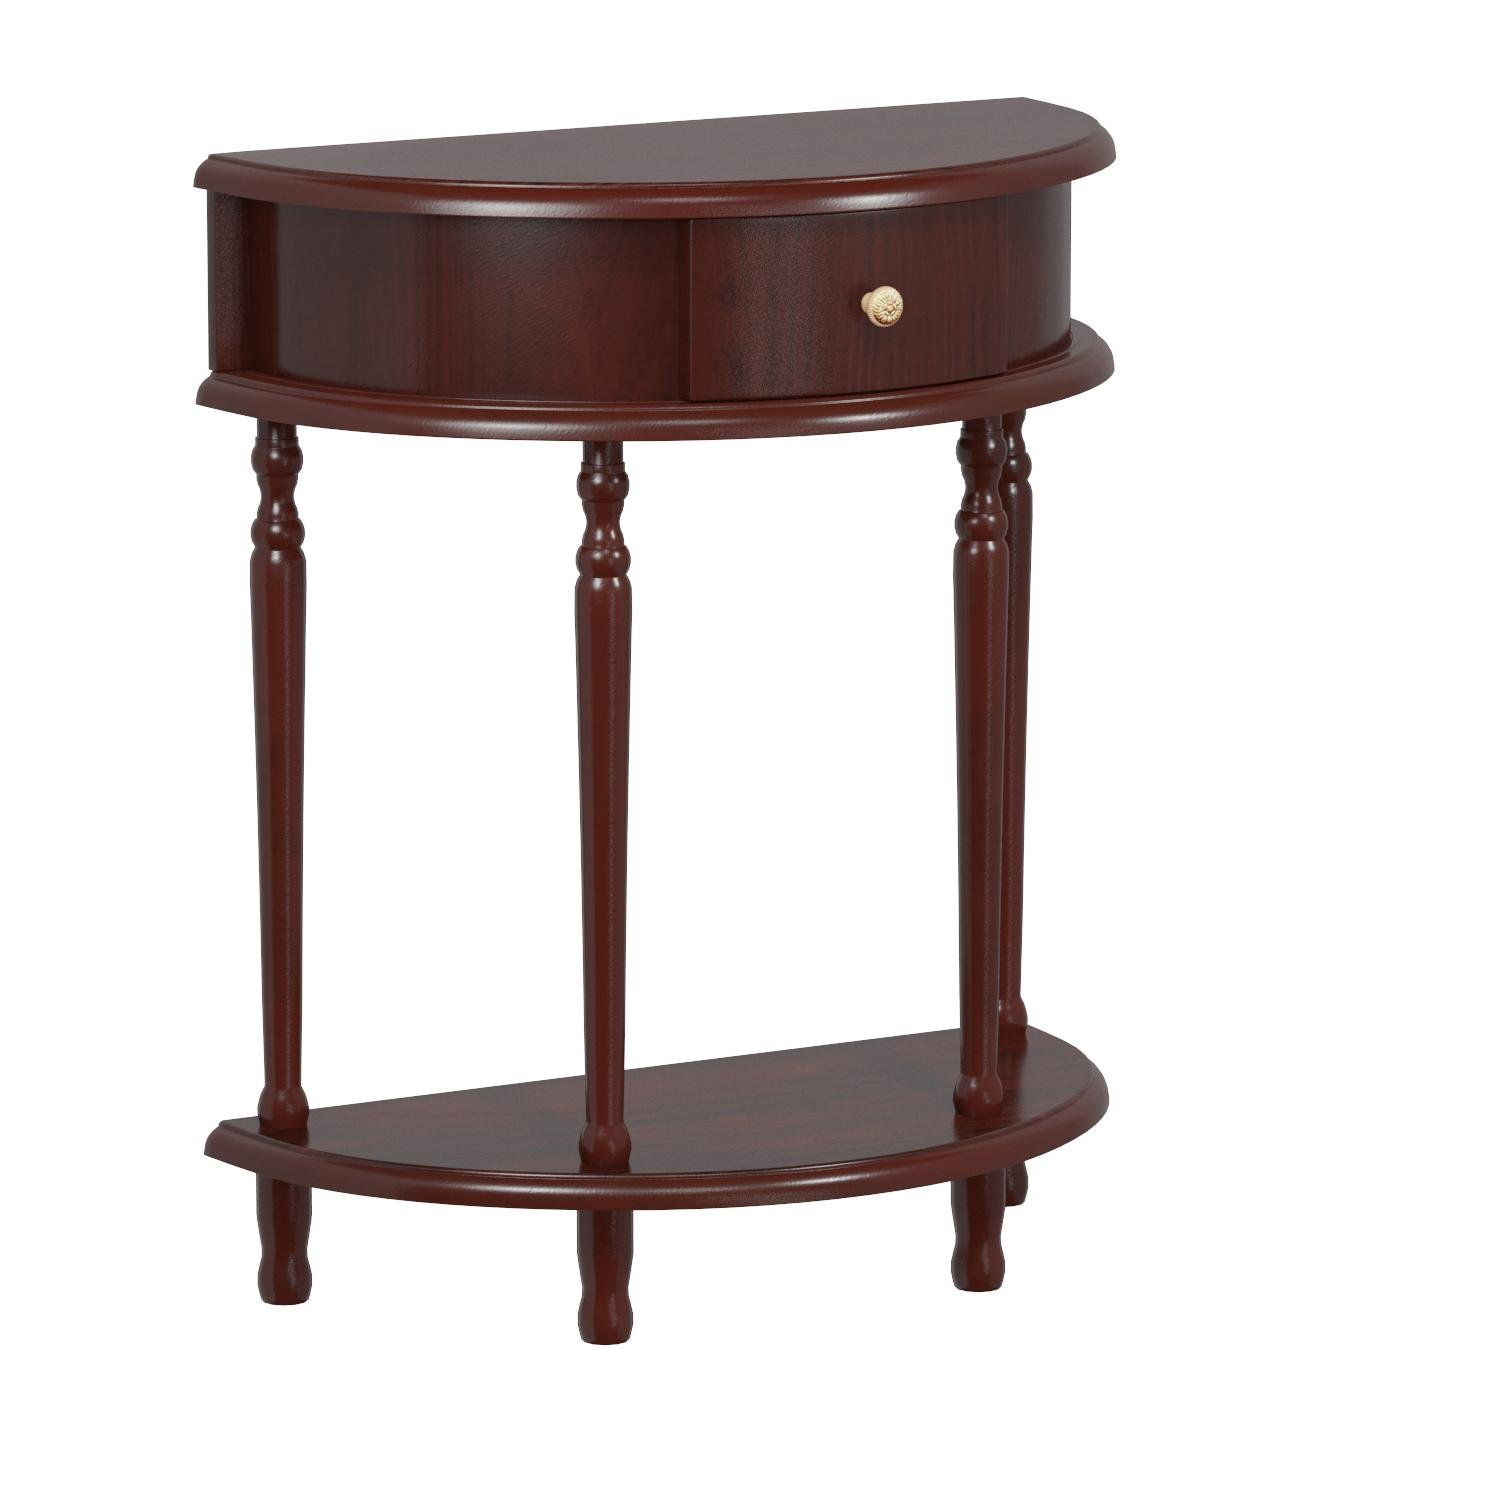 Frenchi Home Furnishing End Table/Side Table, Espresso Finish by Frenchi Home Furnishing (Image #5)